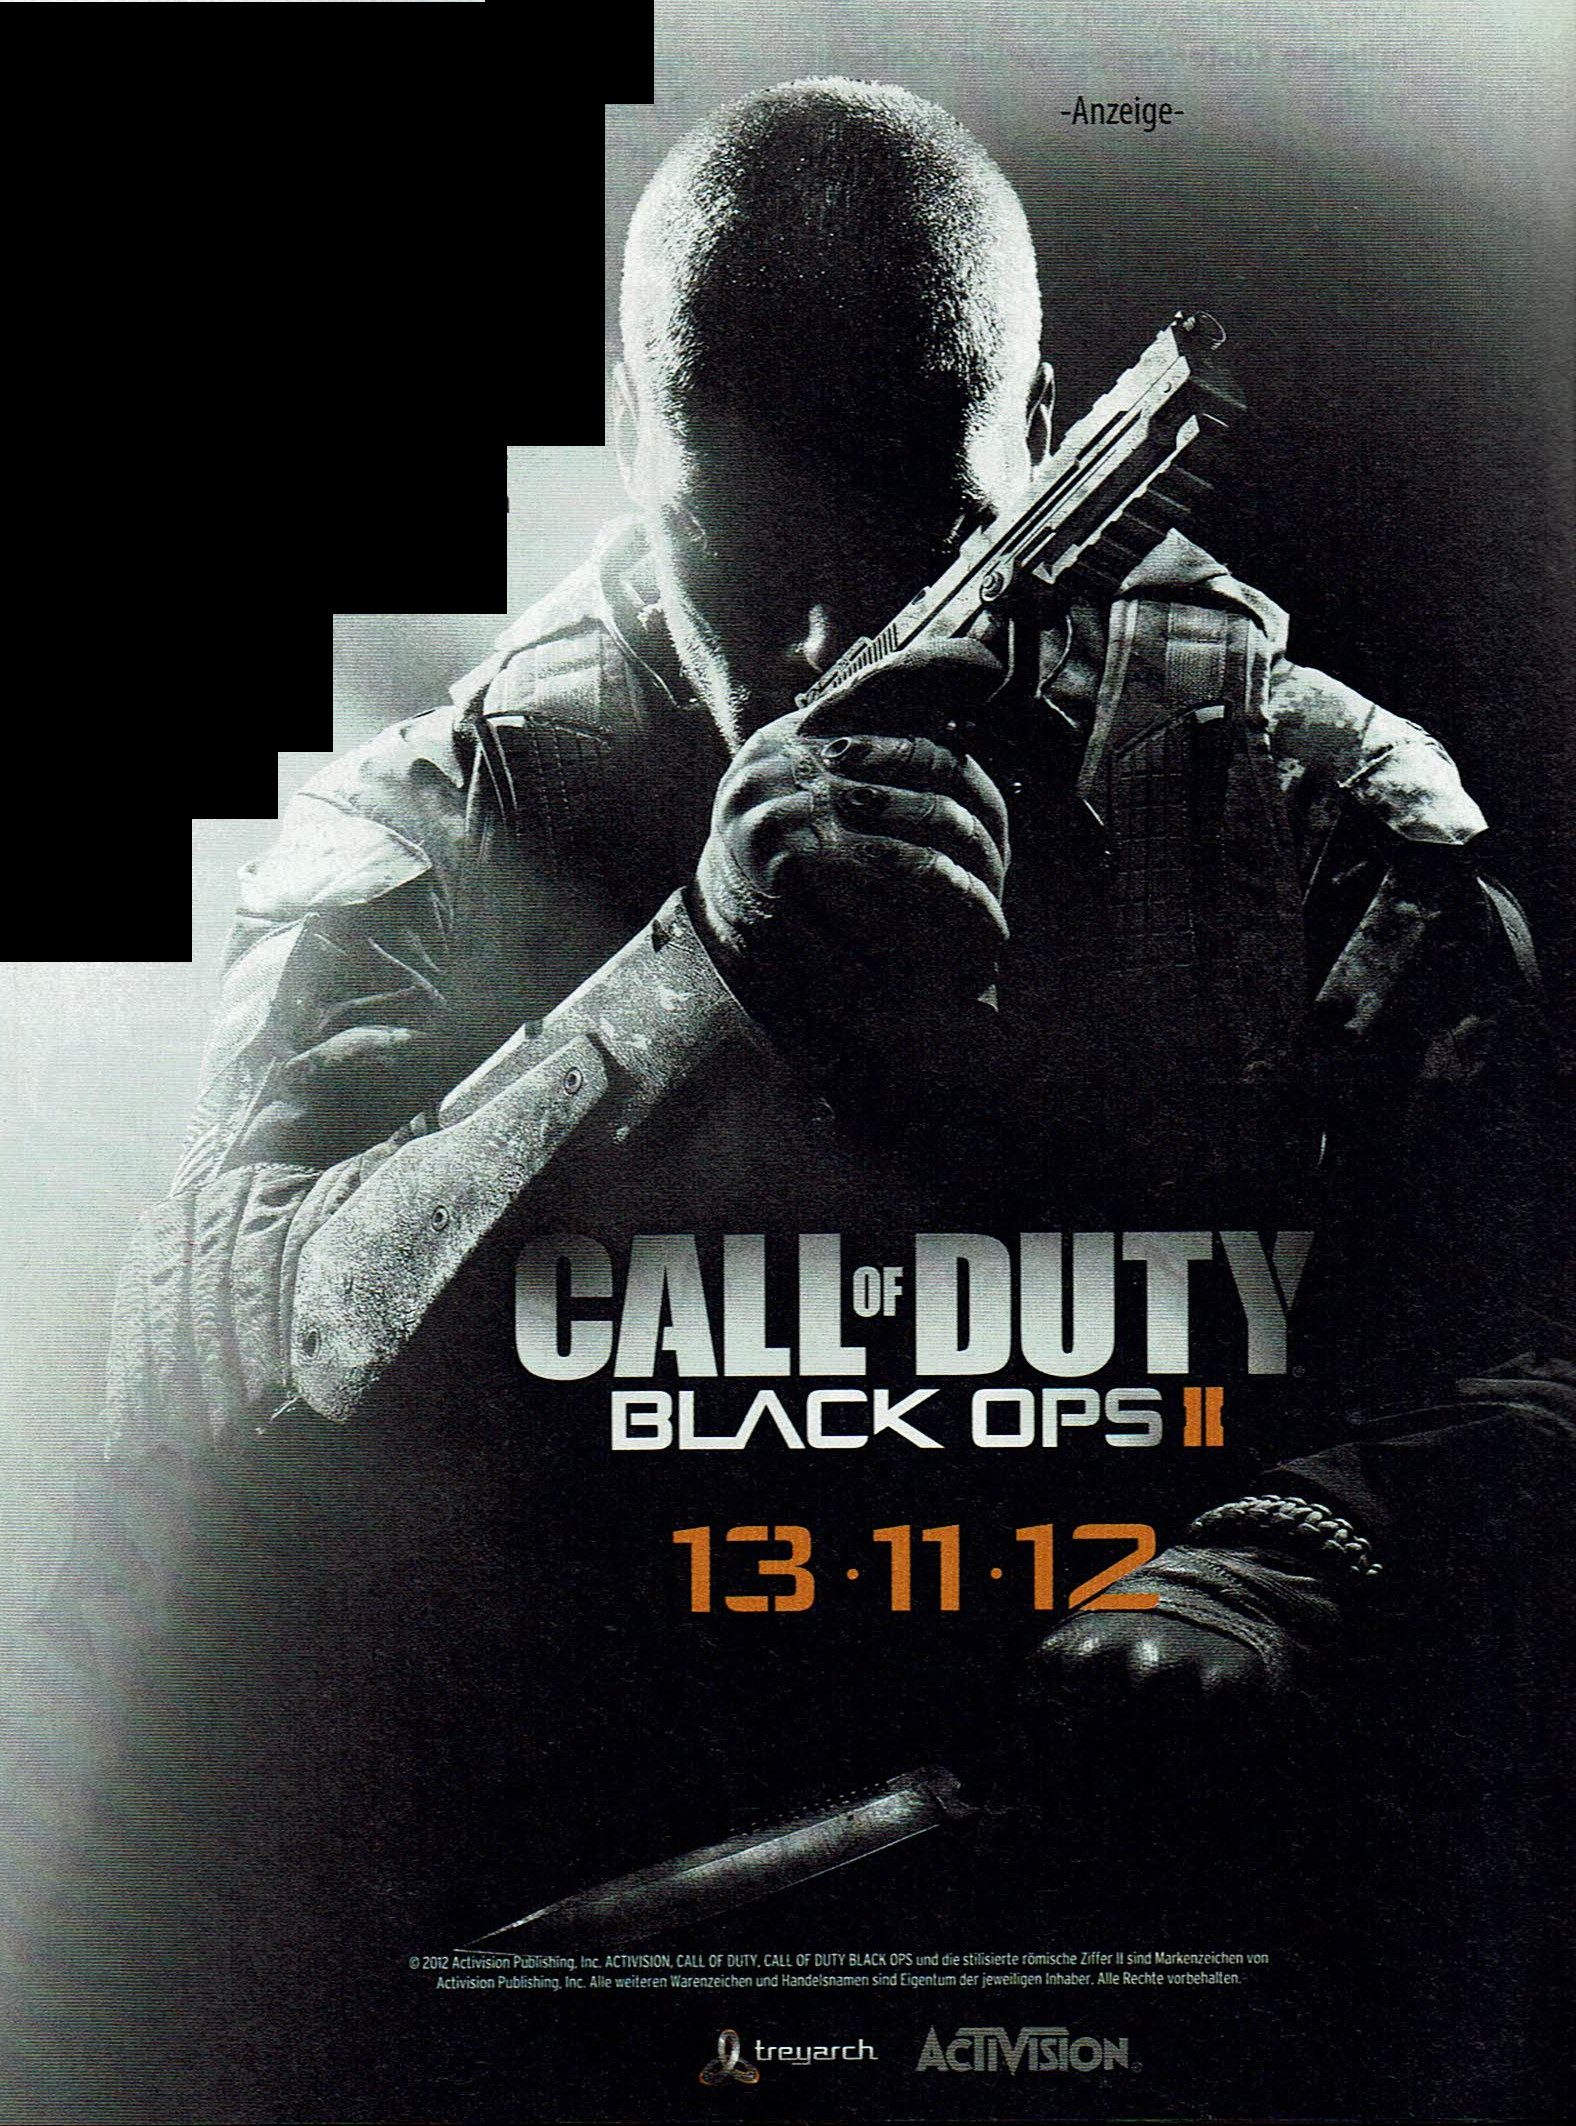 Call of Duty: Black Ops II (2012) promotional art - MobyGames